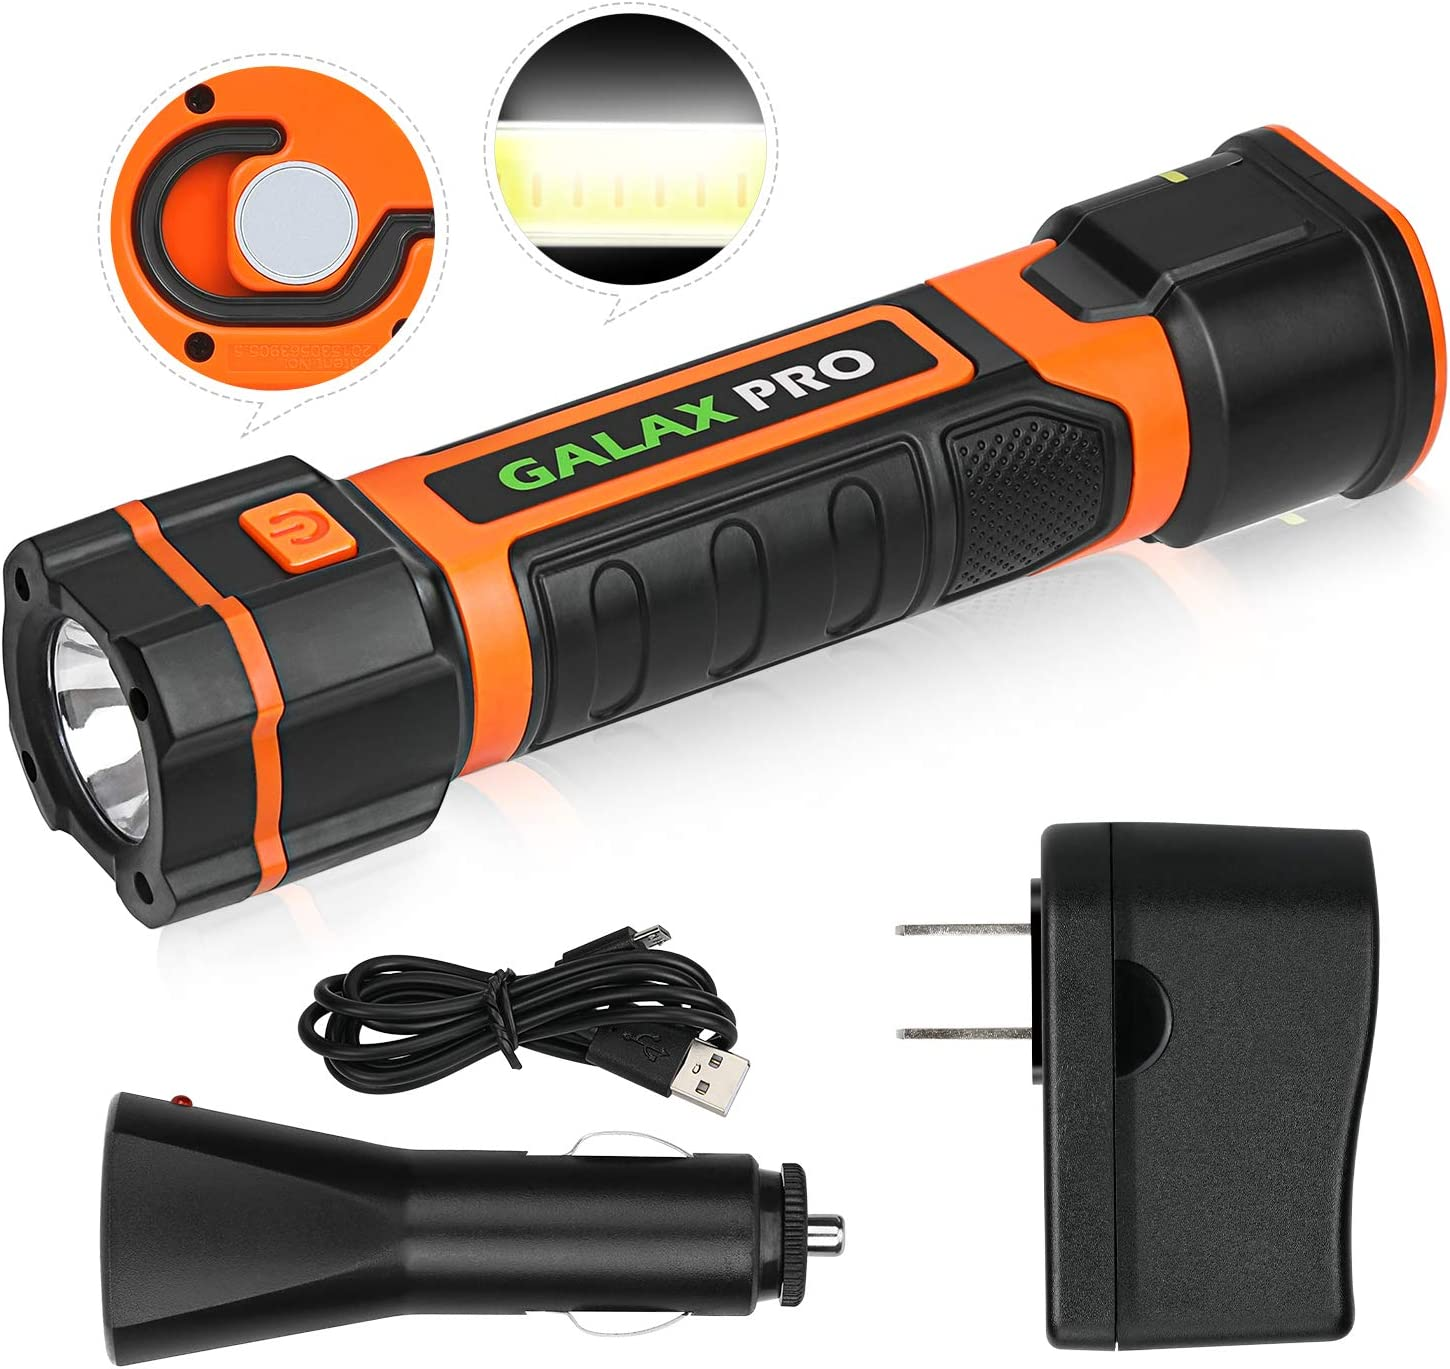 GALAX PRO Rechargeable 2 in 1 Telescopic Torch, Super Bright 280 Lumen, USB Cord & 2 Charger, Magnetic Base and Hook, Water Resistant, Ideal for Outdoor Camping Hiking Emergency and Daily Use